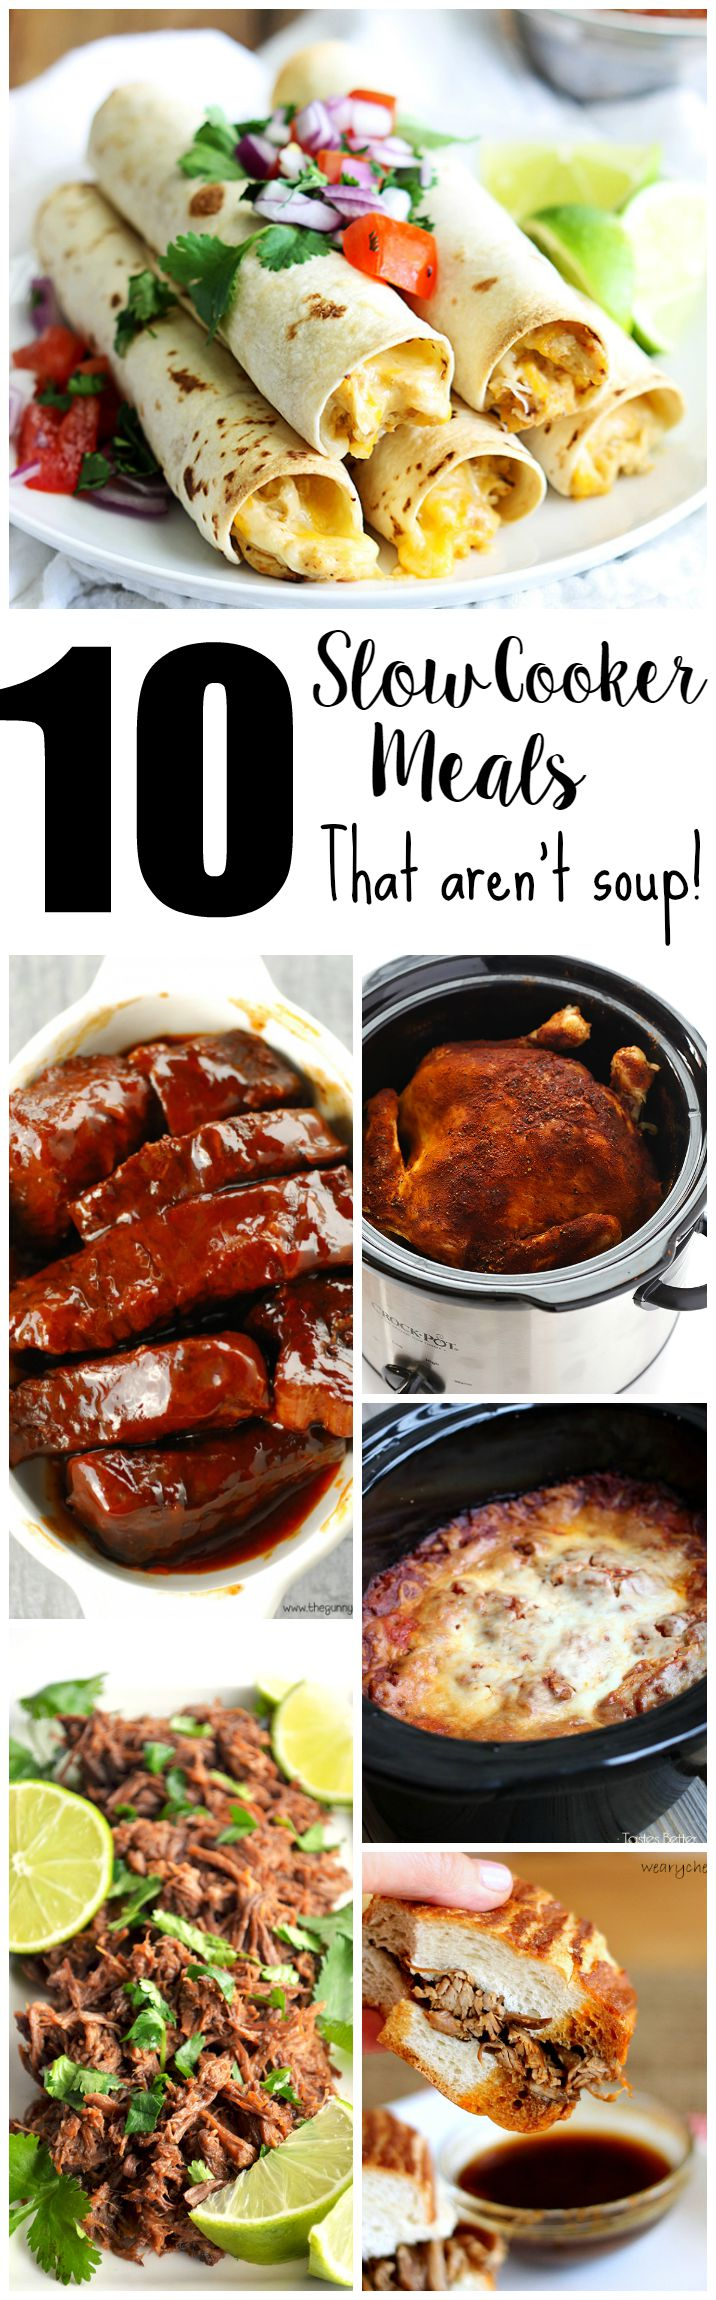 10 Slow Cooker Meals That Aren't Soup!